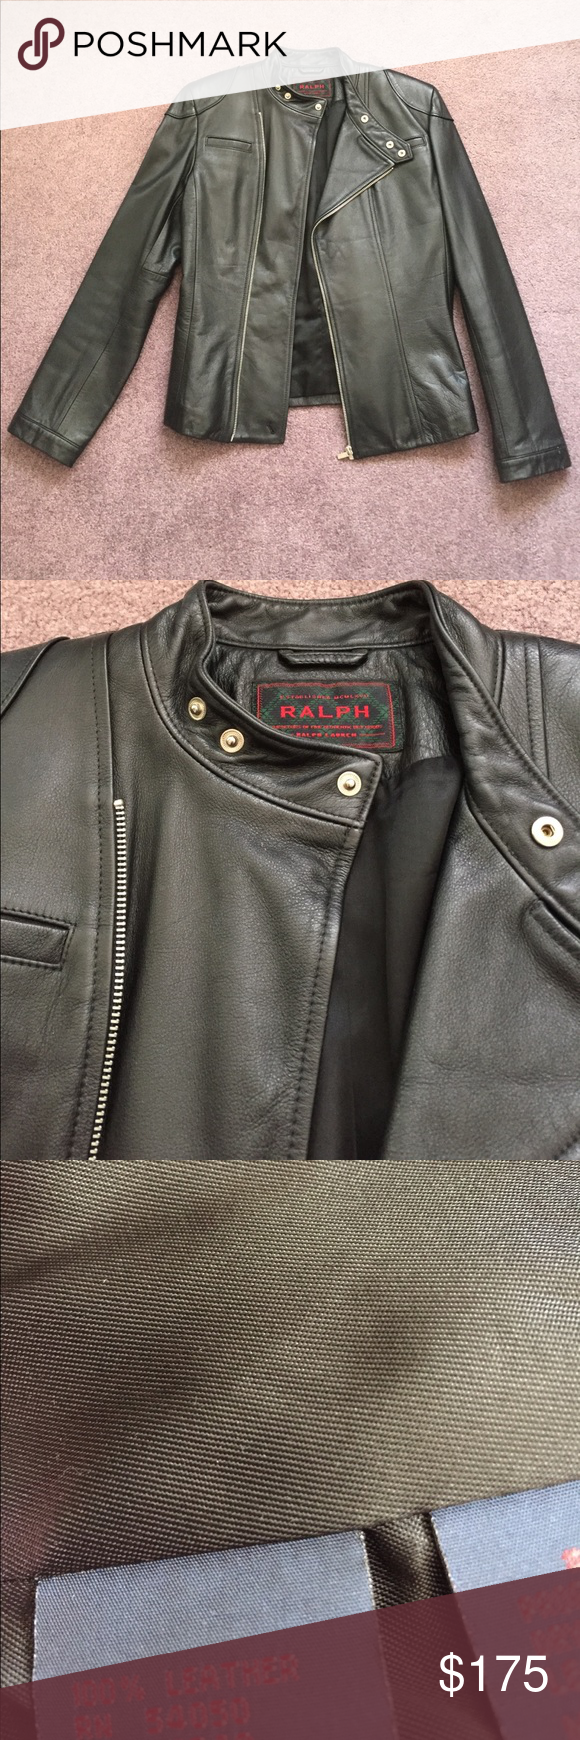 united states the cheapest temperament shoes Ralph Lauren Leather Motto Jacket 100% leather Ralph Lauren ...